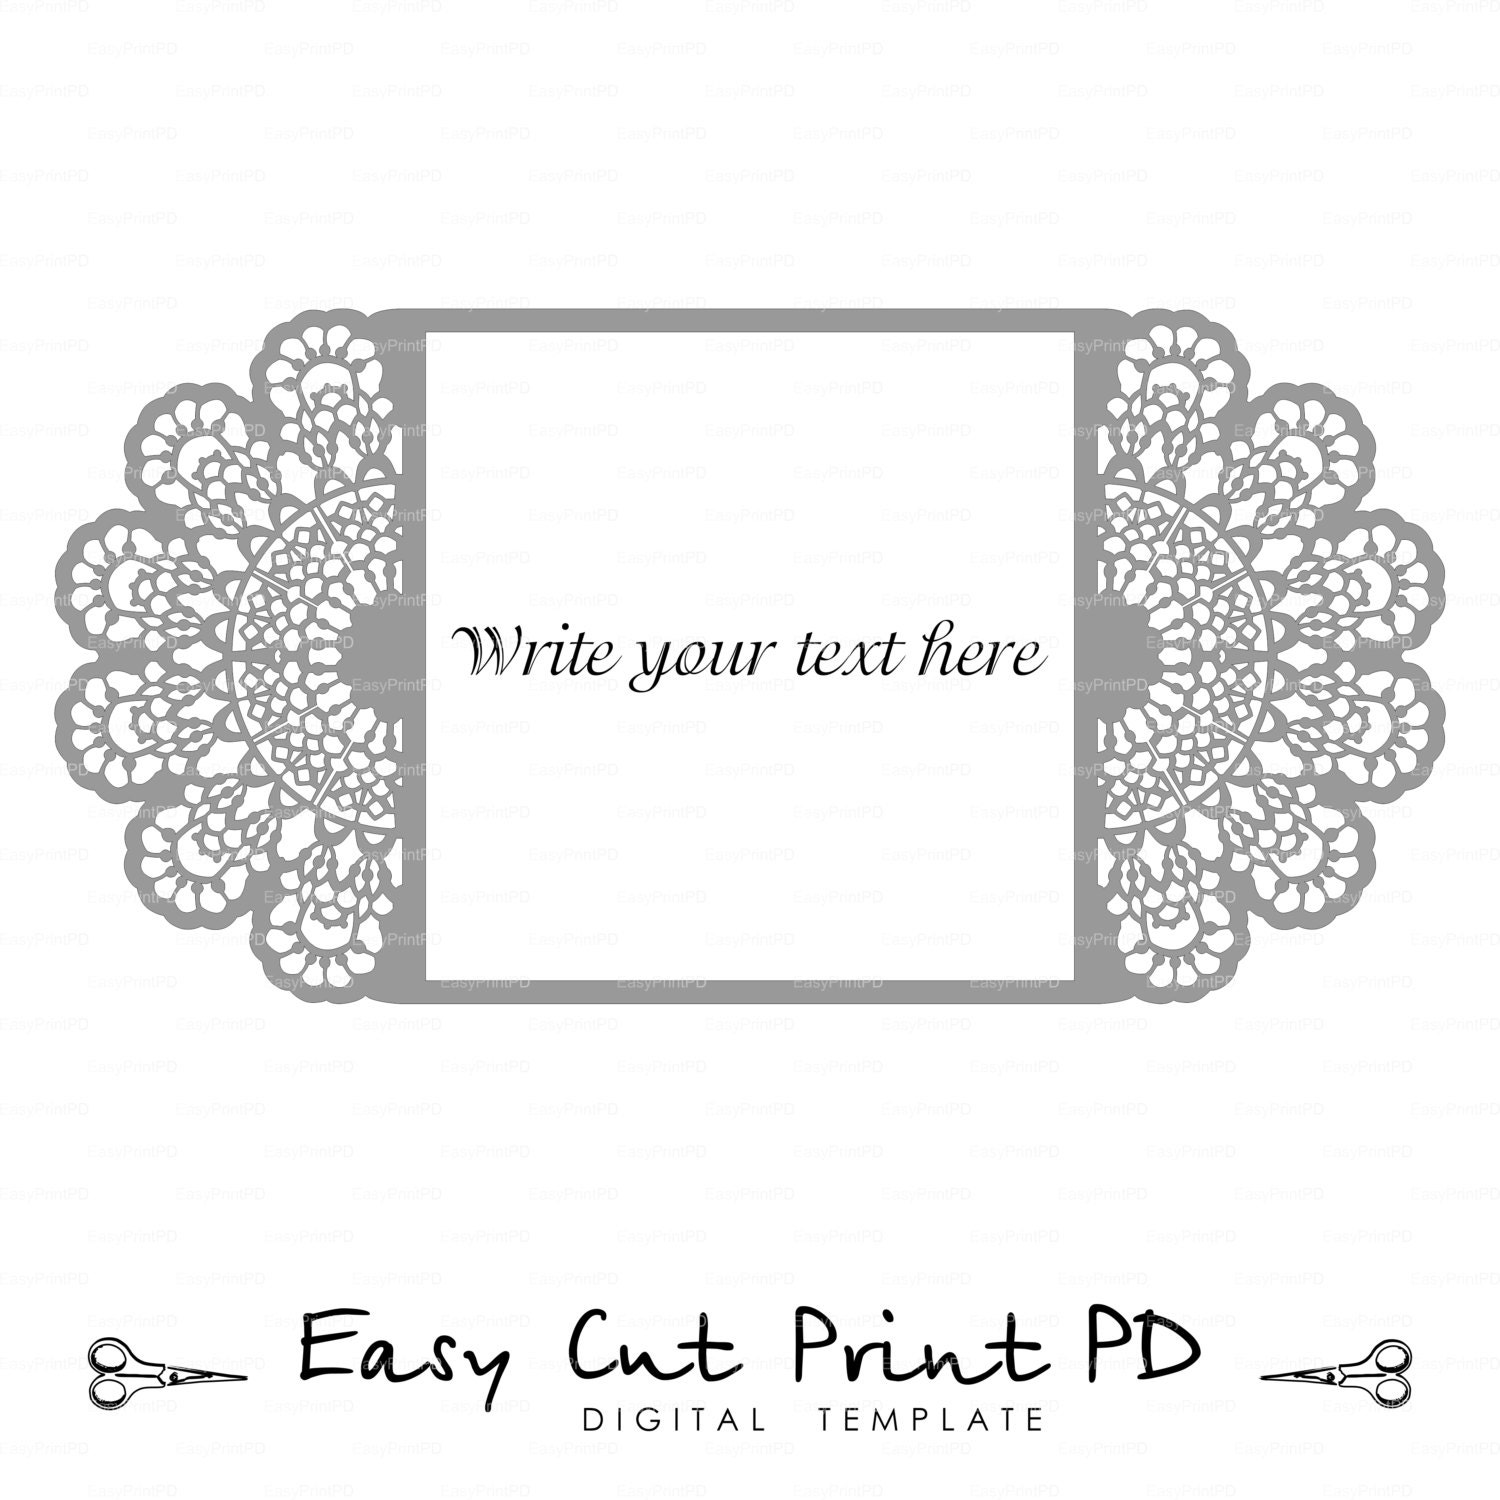 Crochet Wedding Invitations: Wedding Invitation Lace Crochet Doily Pattern Card Template